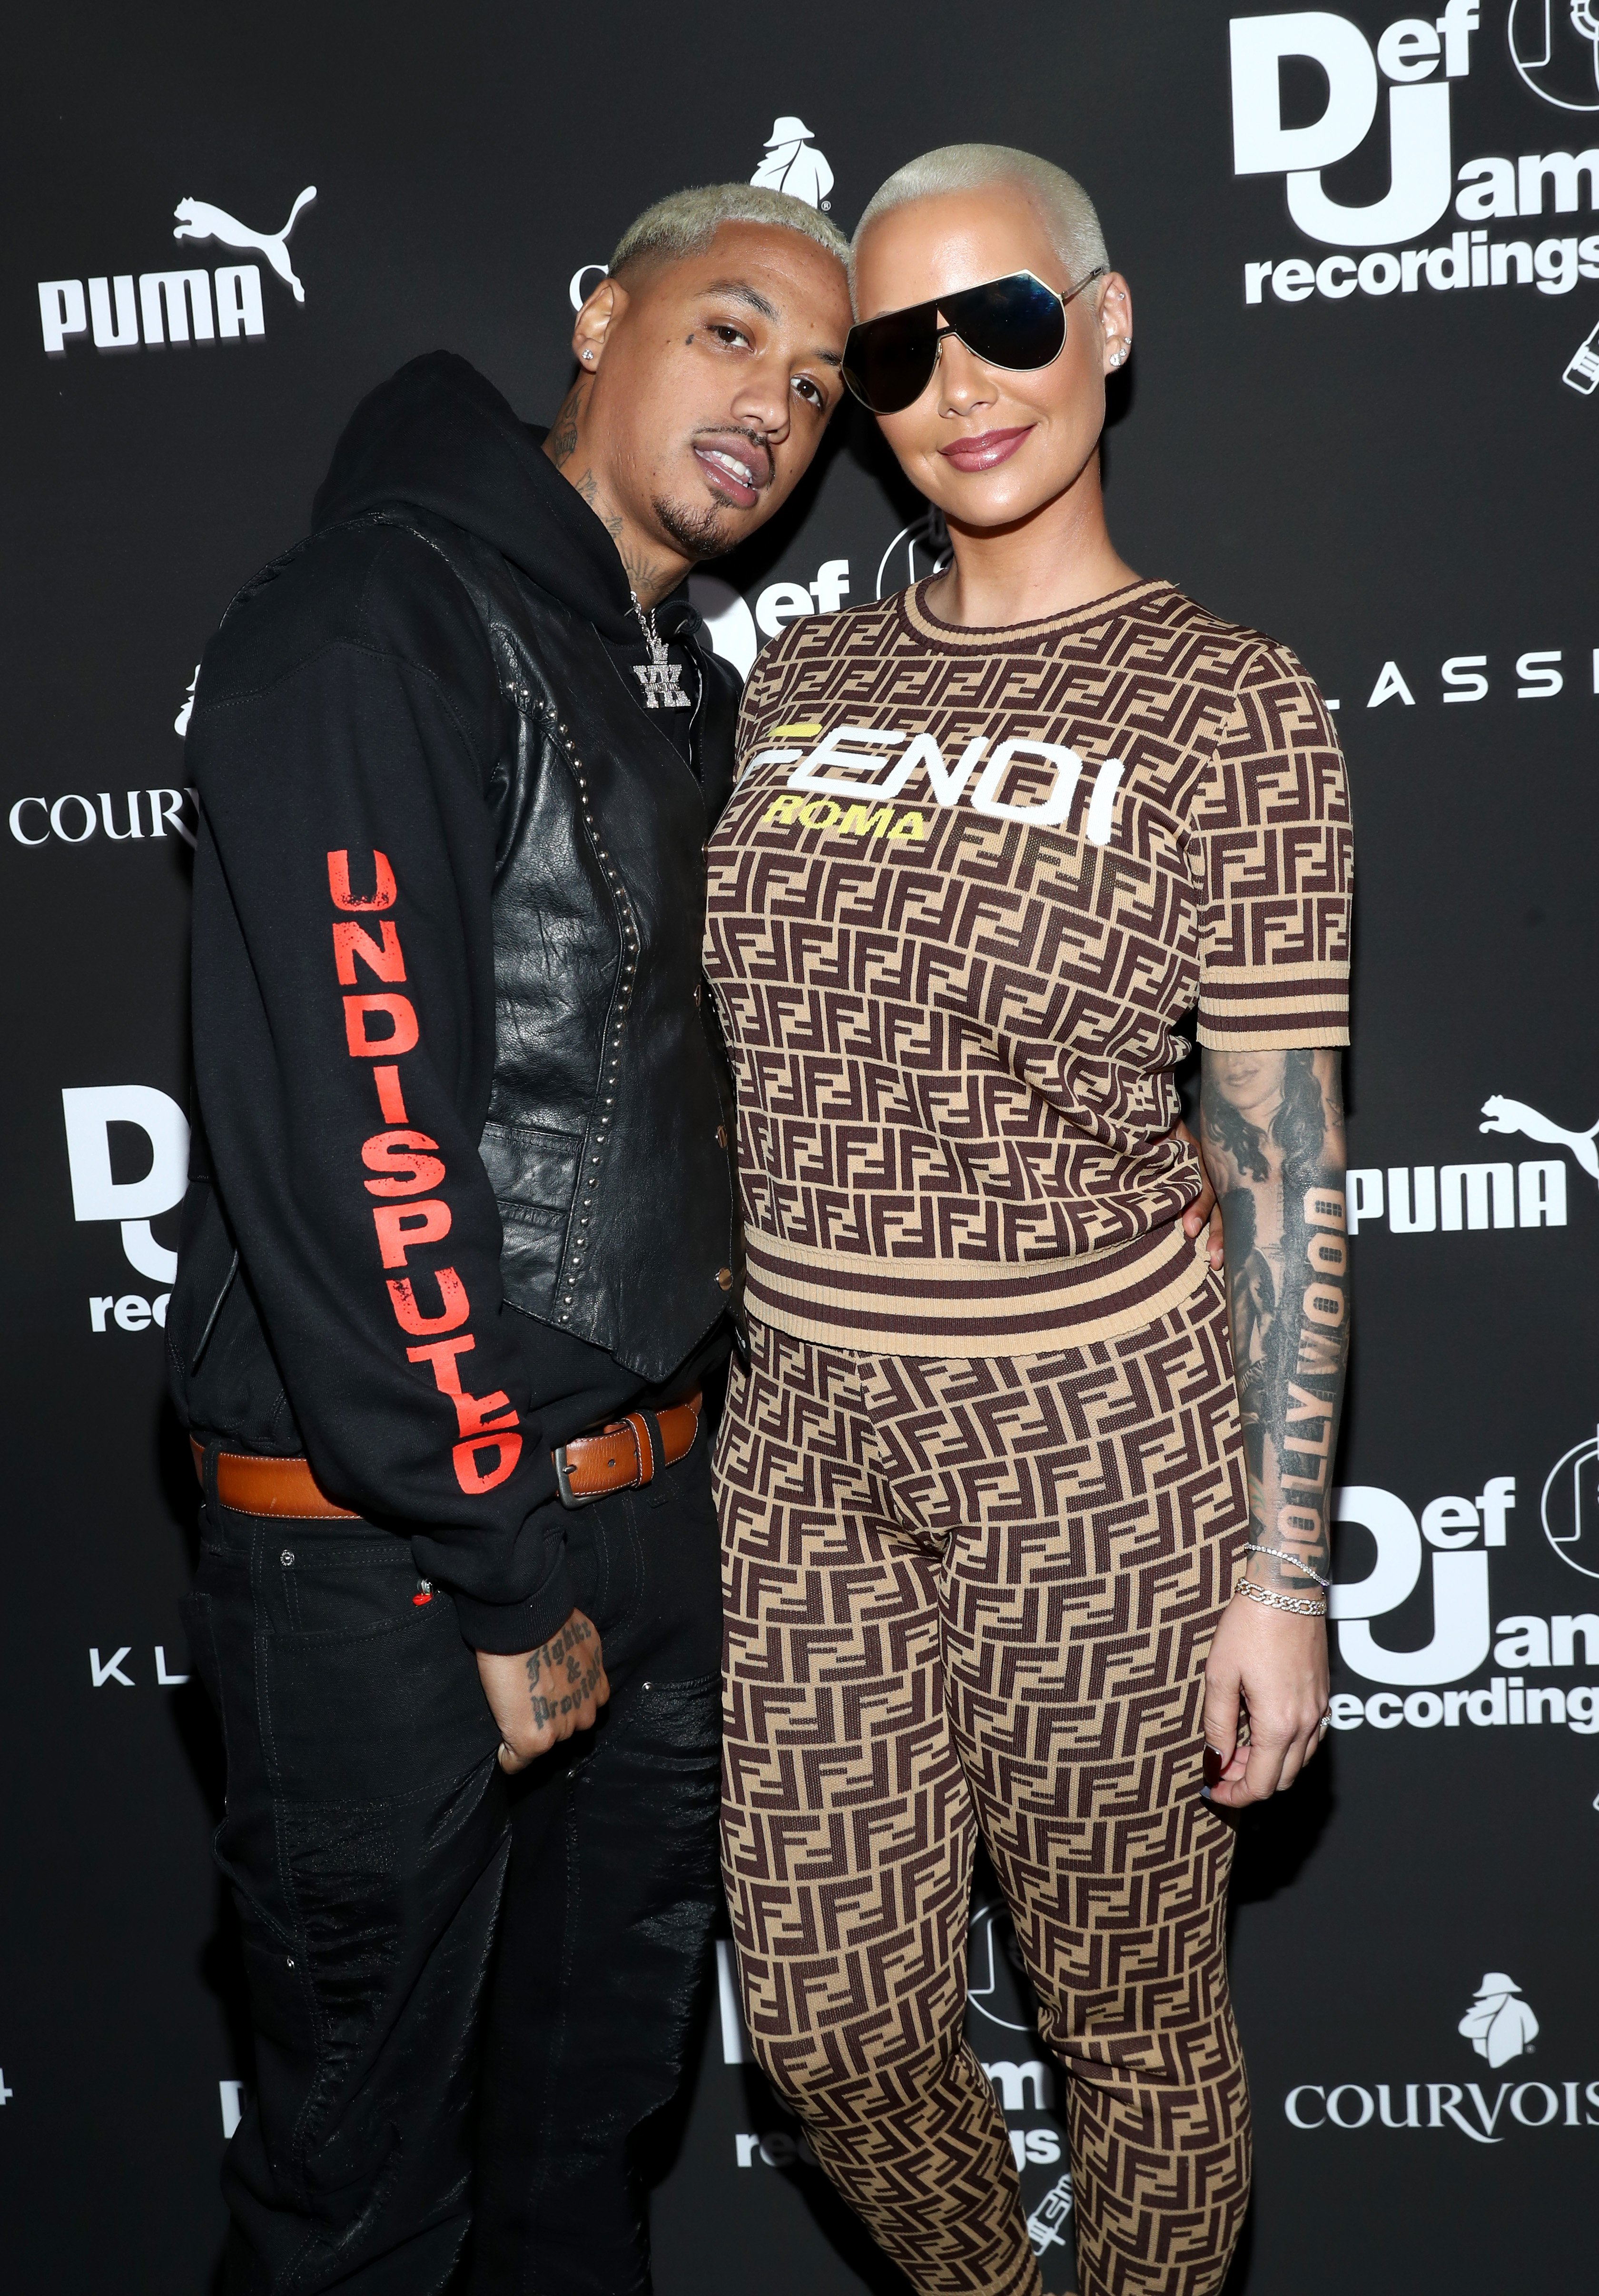 Alexander Edwards and Amber Rose attend the Def Jam Pre-Grammy 2019 party at Catch LA on February 08, 2019 in West Hollywood, California | Photo: Getty Images